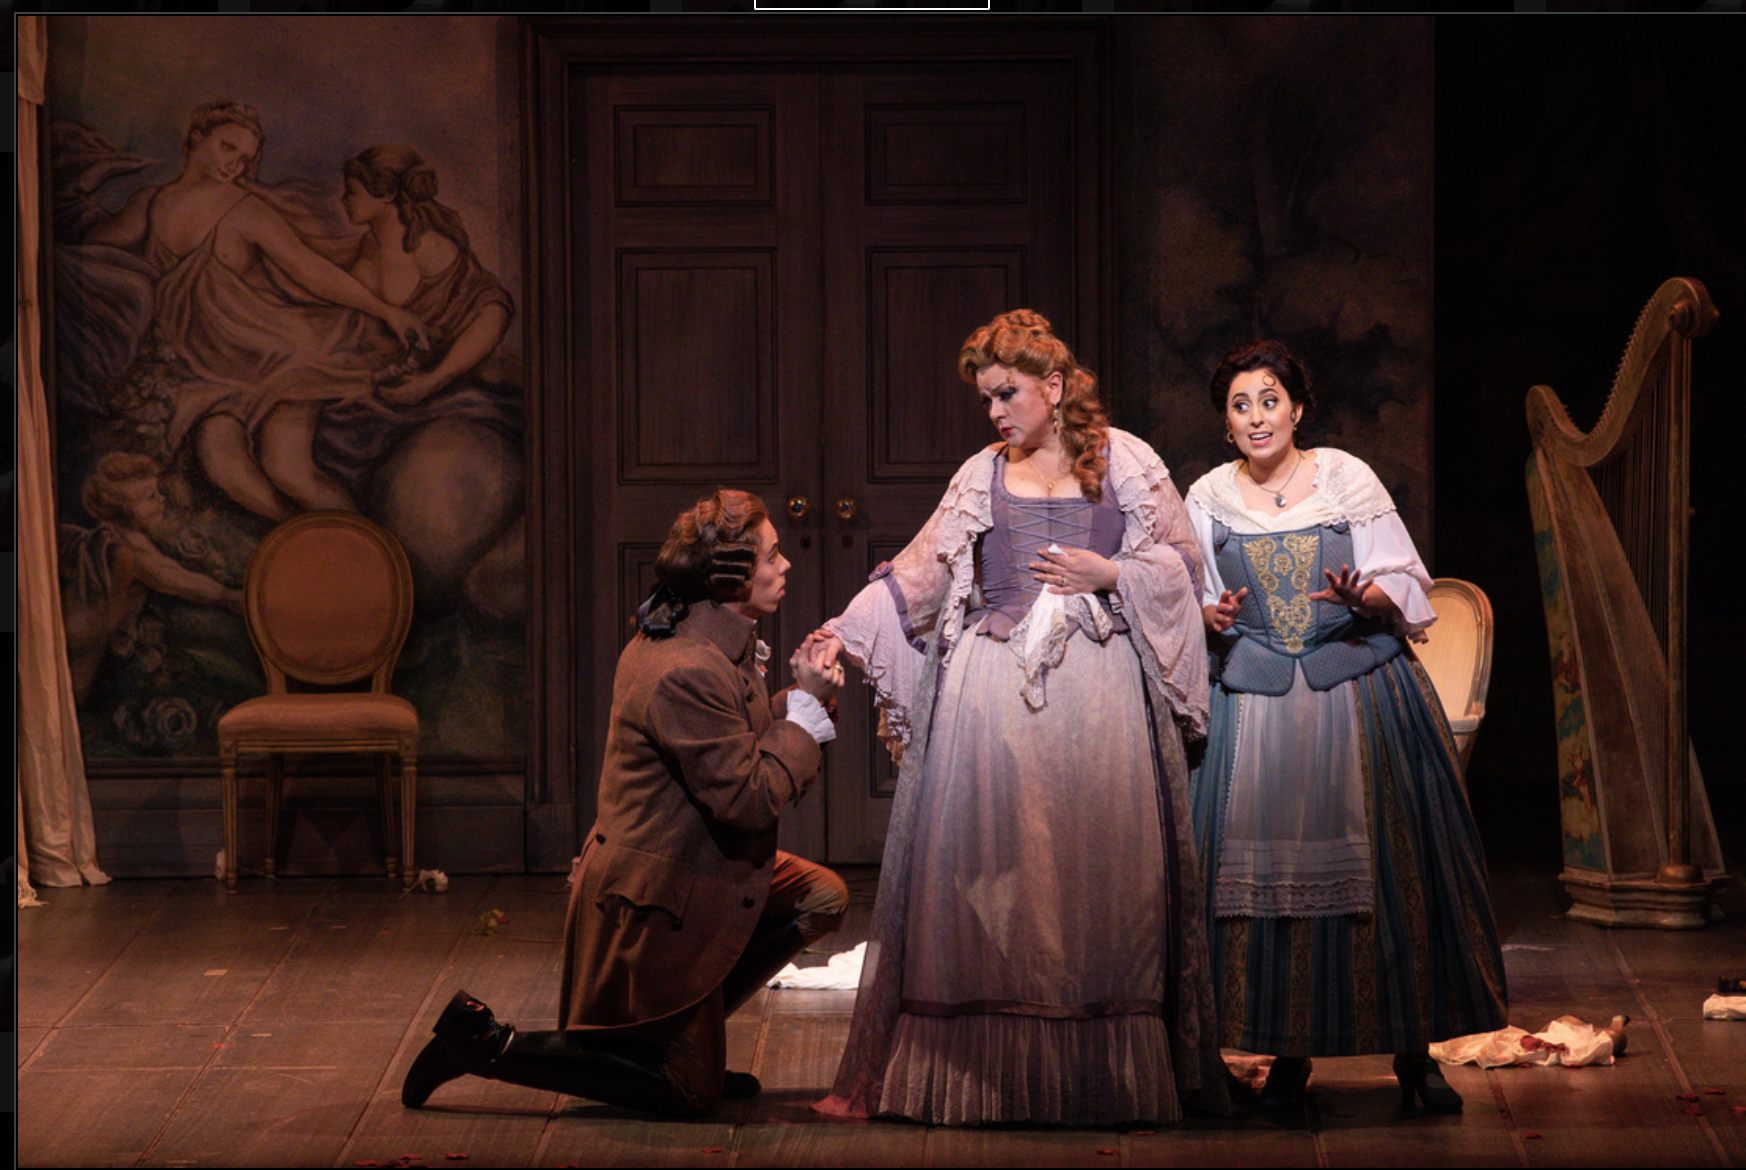 Susanna - Le nozze di Figaro  Florida Grand Opera, 2019  Photo by David Azoulay